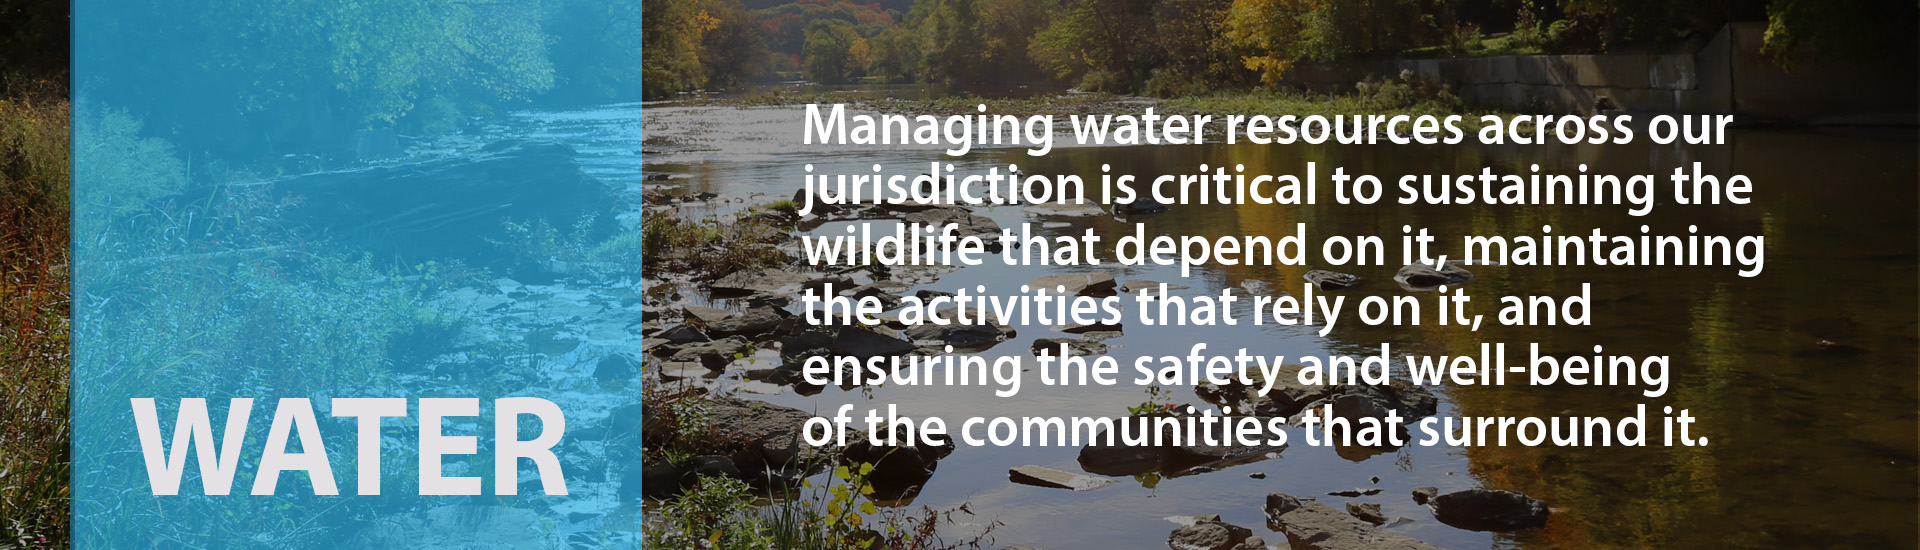 Managing water resources is critical to sustaining wildlife, maintaining the activities that rely on it, and ensuring the safety and well-being of communities